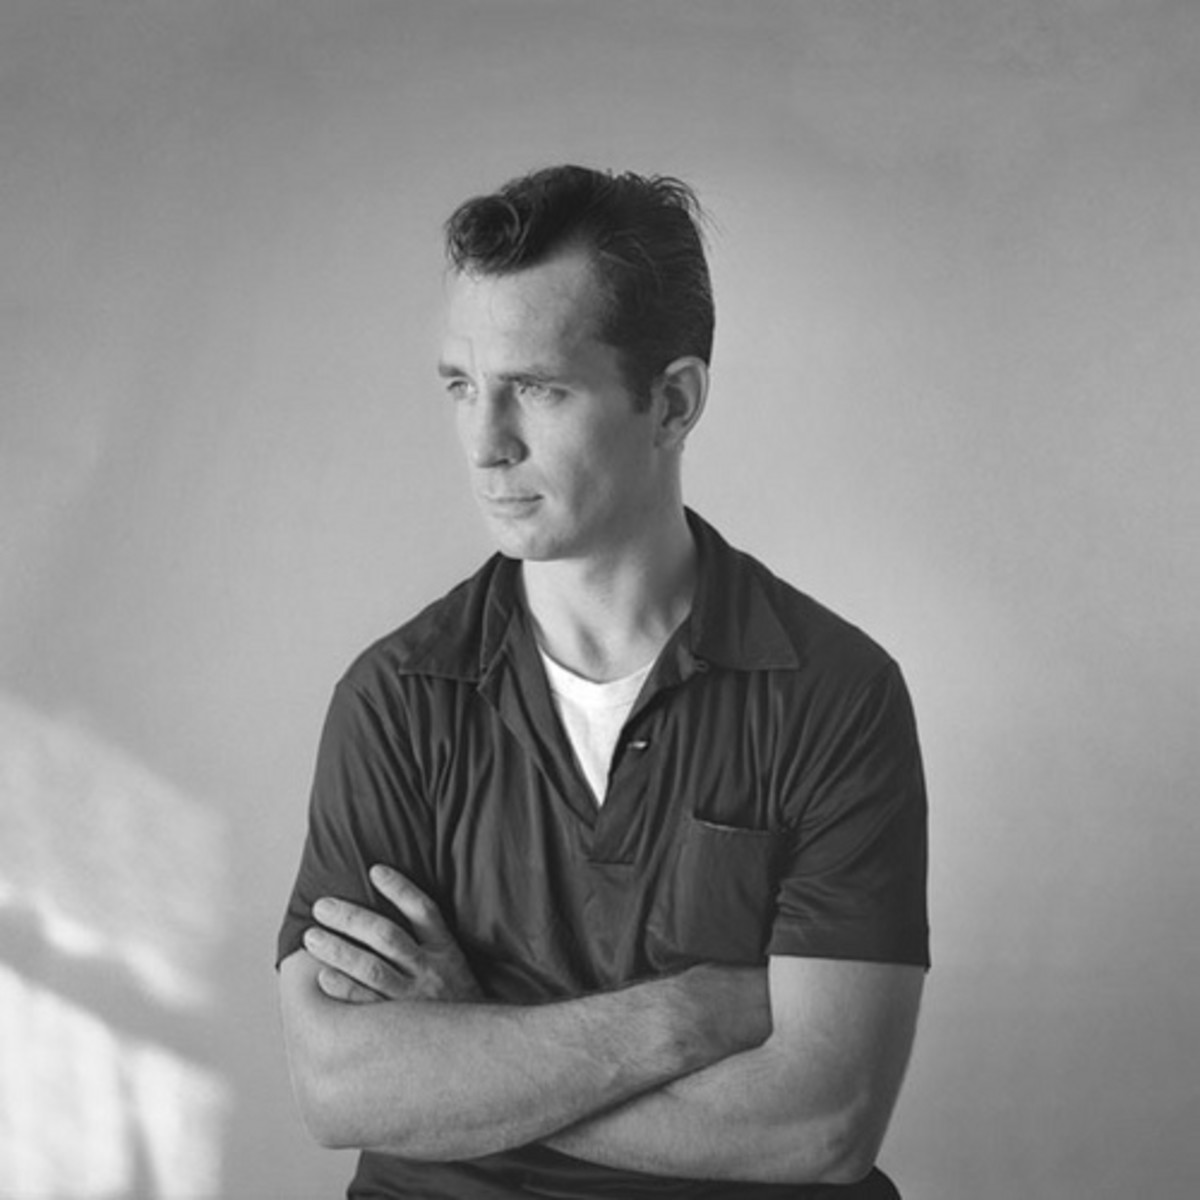 Review of On The Road : Jack Kerouac's Classic Beat Novel